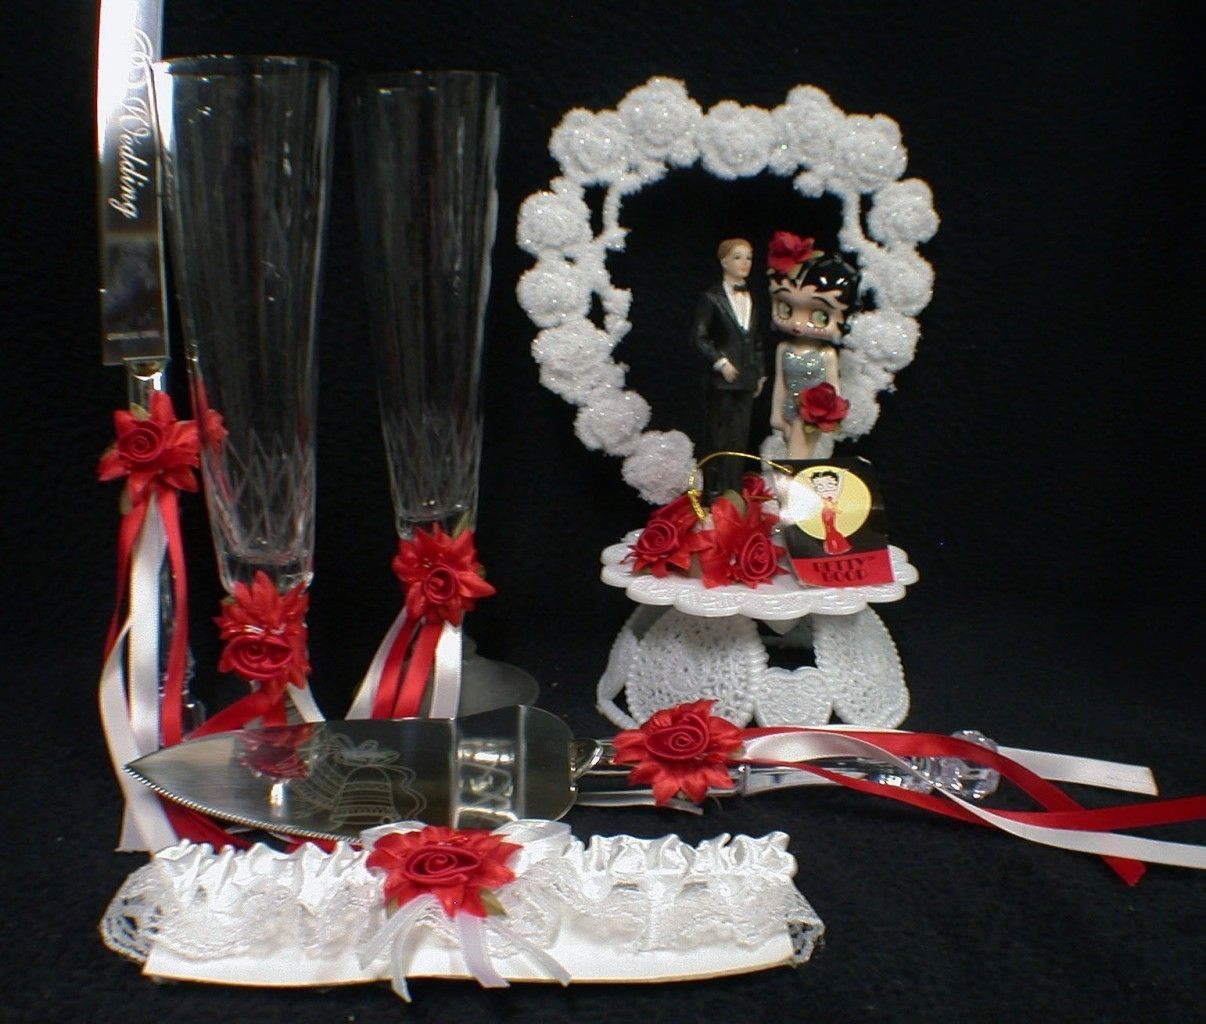 Sexy betty boop red silver wedding cake topper lot knife serve